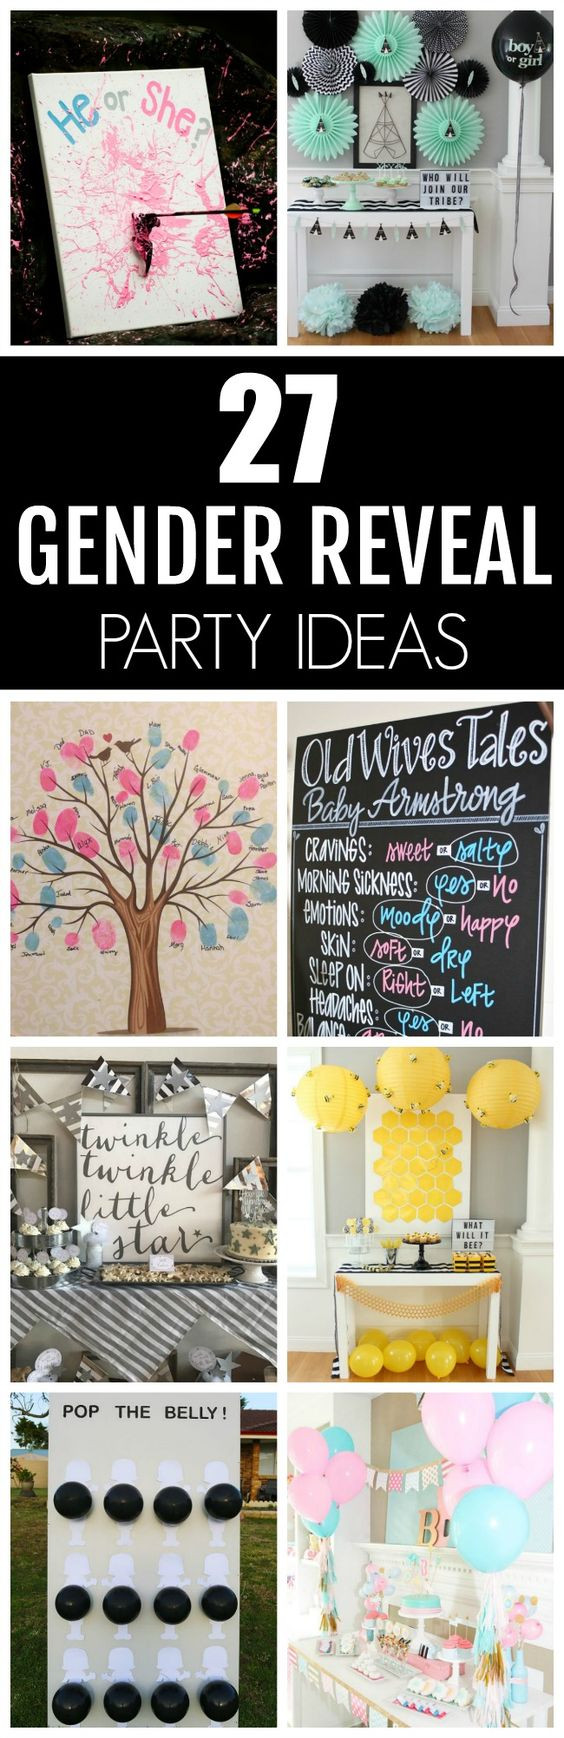 Creative Gender Reveal Party Ideas  27 Creative Gender Reveal Party Ideas Pretty My Party